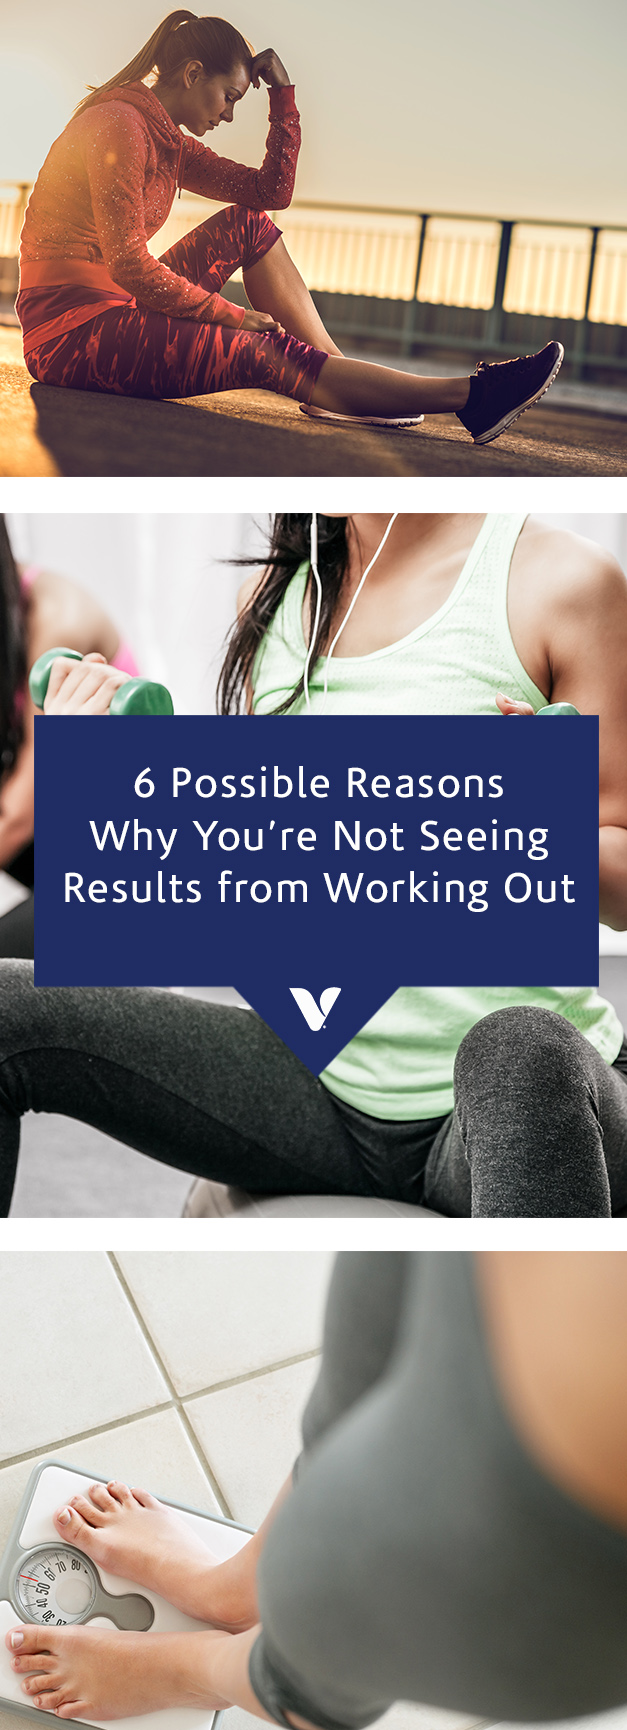 reasons-why-youre-not-seeing-results